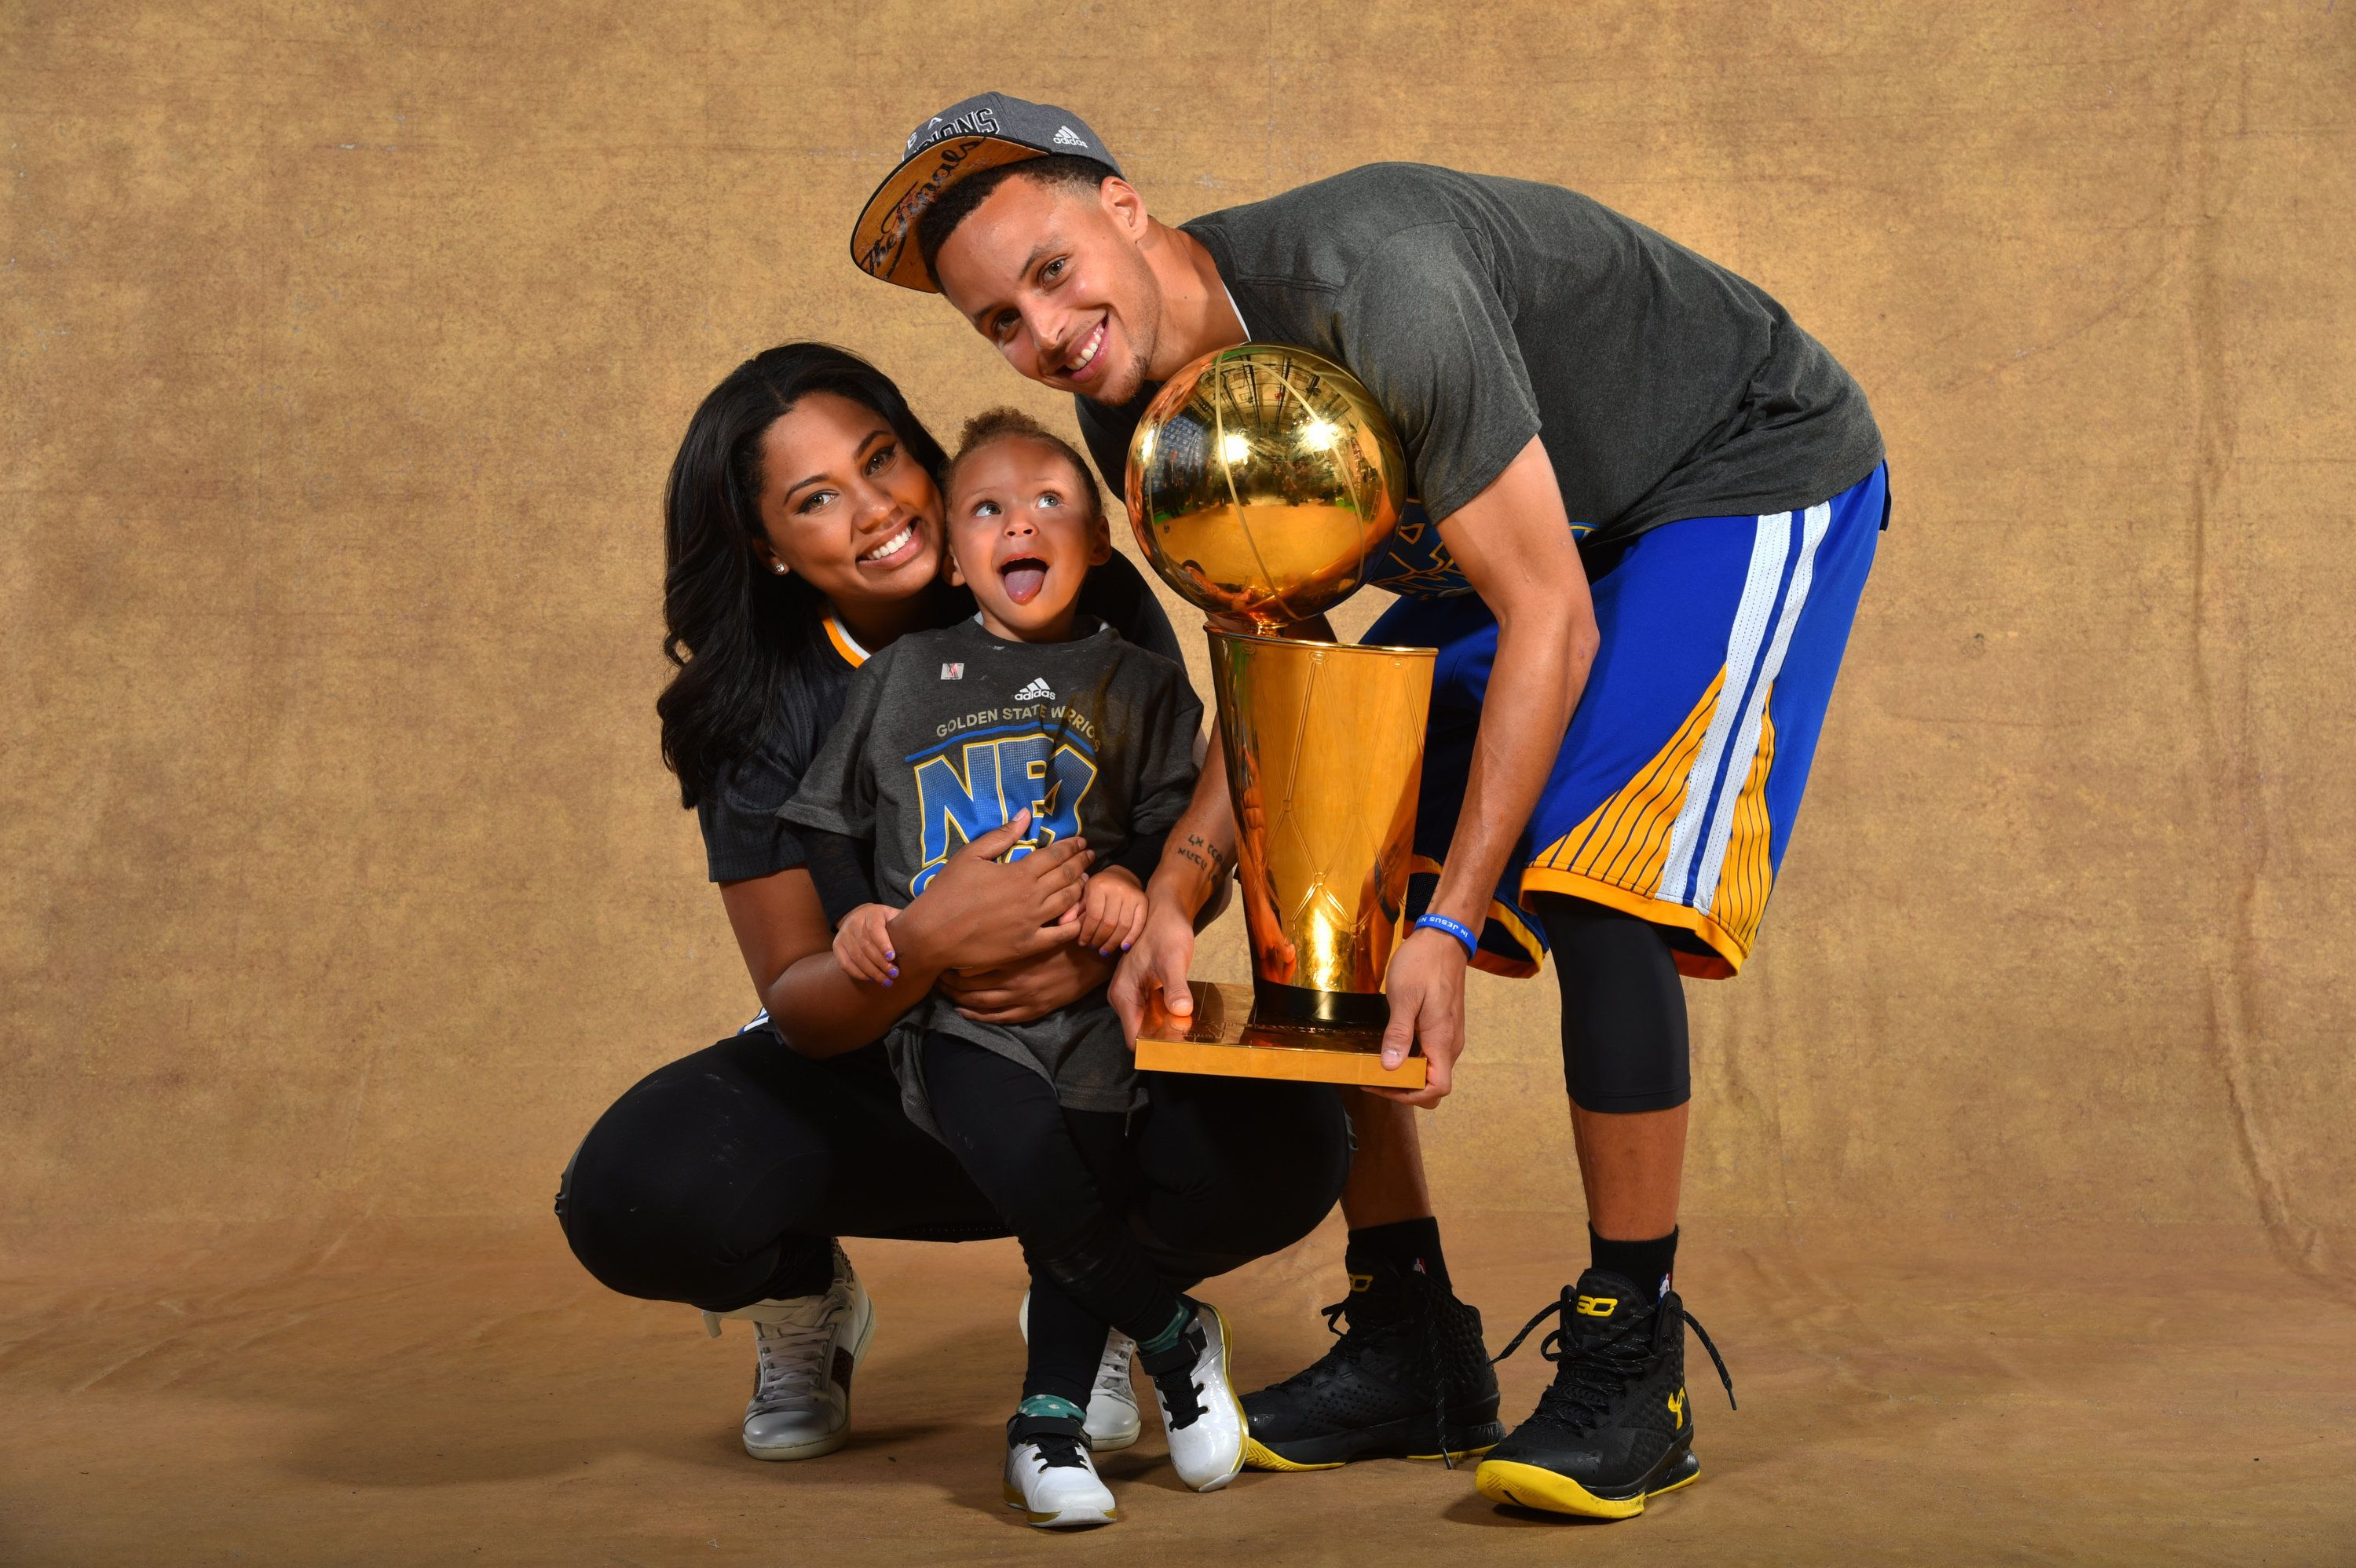 CLEVELAND, OH - JUNE 16: Ayesha Curry, Riley Curry and Stephen Curry #30 of the Golden State Warriors poses for a portrait with the Larry O'Brien trophy after defeating the Cleveland Cavaliers in Game Six of the 2015 NBA Finals on June 16, 2015 at Quicken Loans Arena in Cleveland, Ohio. NOTE TO USER: User expressly acknowledges and agrees that, by downloading and or using this photograph, user is consenting to the terms and conditions of Getty Images License Agreement. Mandatory Copyright Notice: Copyright 2015 NBAE (Photo by Jesse D. Garrabrant/NBAE via Getty Images)